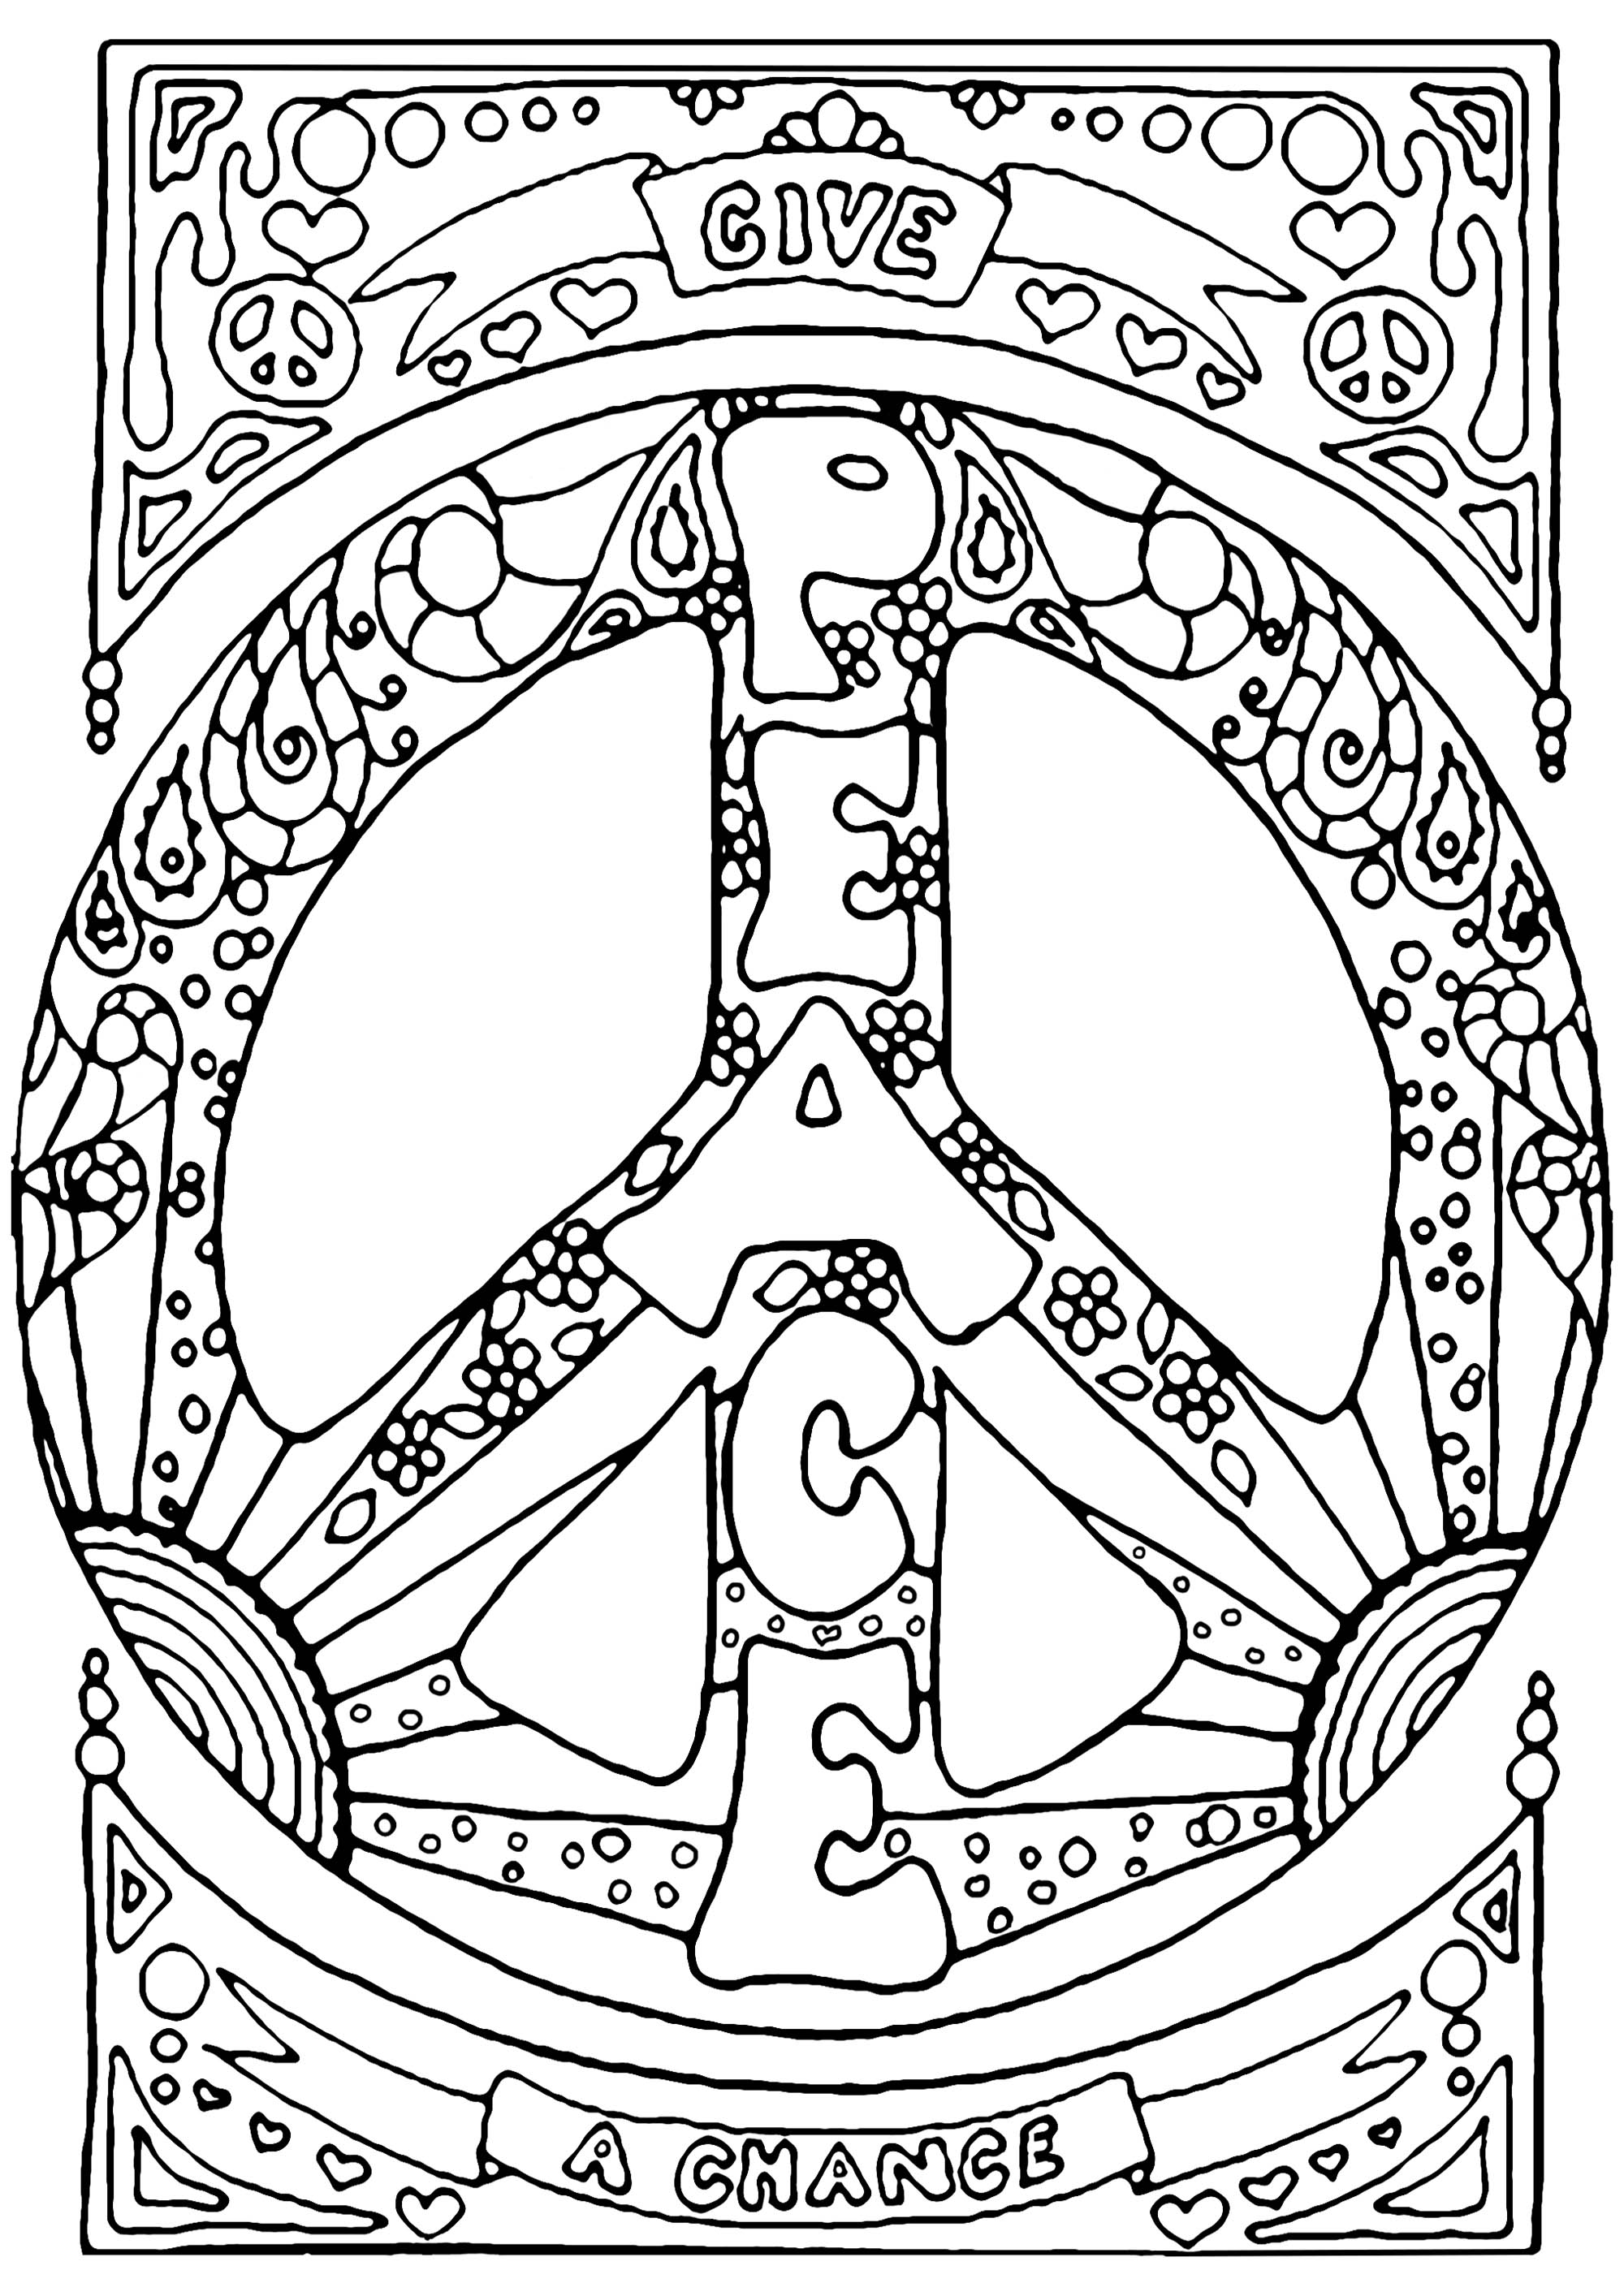 Give Peace a Chance is the first official song of John Lennon's solo career (1969).  It has become an anti-war anthem, and a universal message for peace and hope. Discover this mythical slogan through this beautiful coloring page !